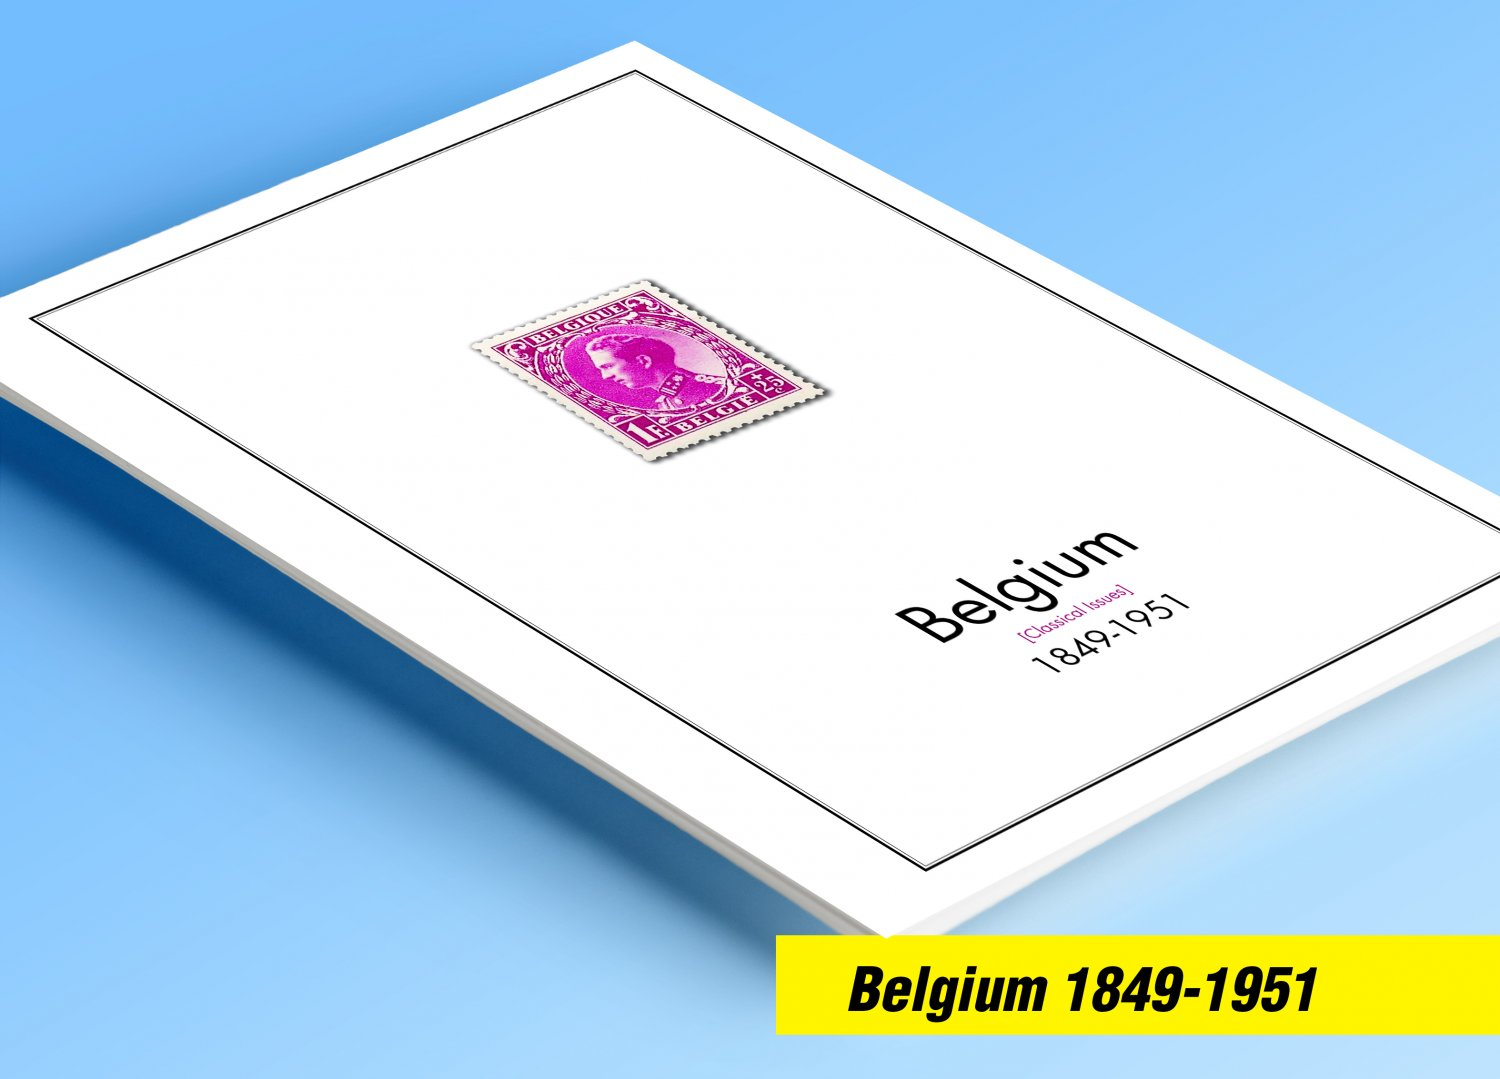 COLOR PRINTED BELGIUM [CLASS] 1849-1951 STAMP ALBUM PAGES (60 illustrated pages)